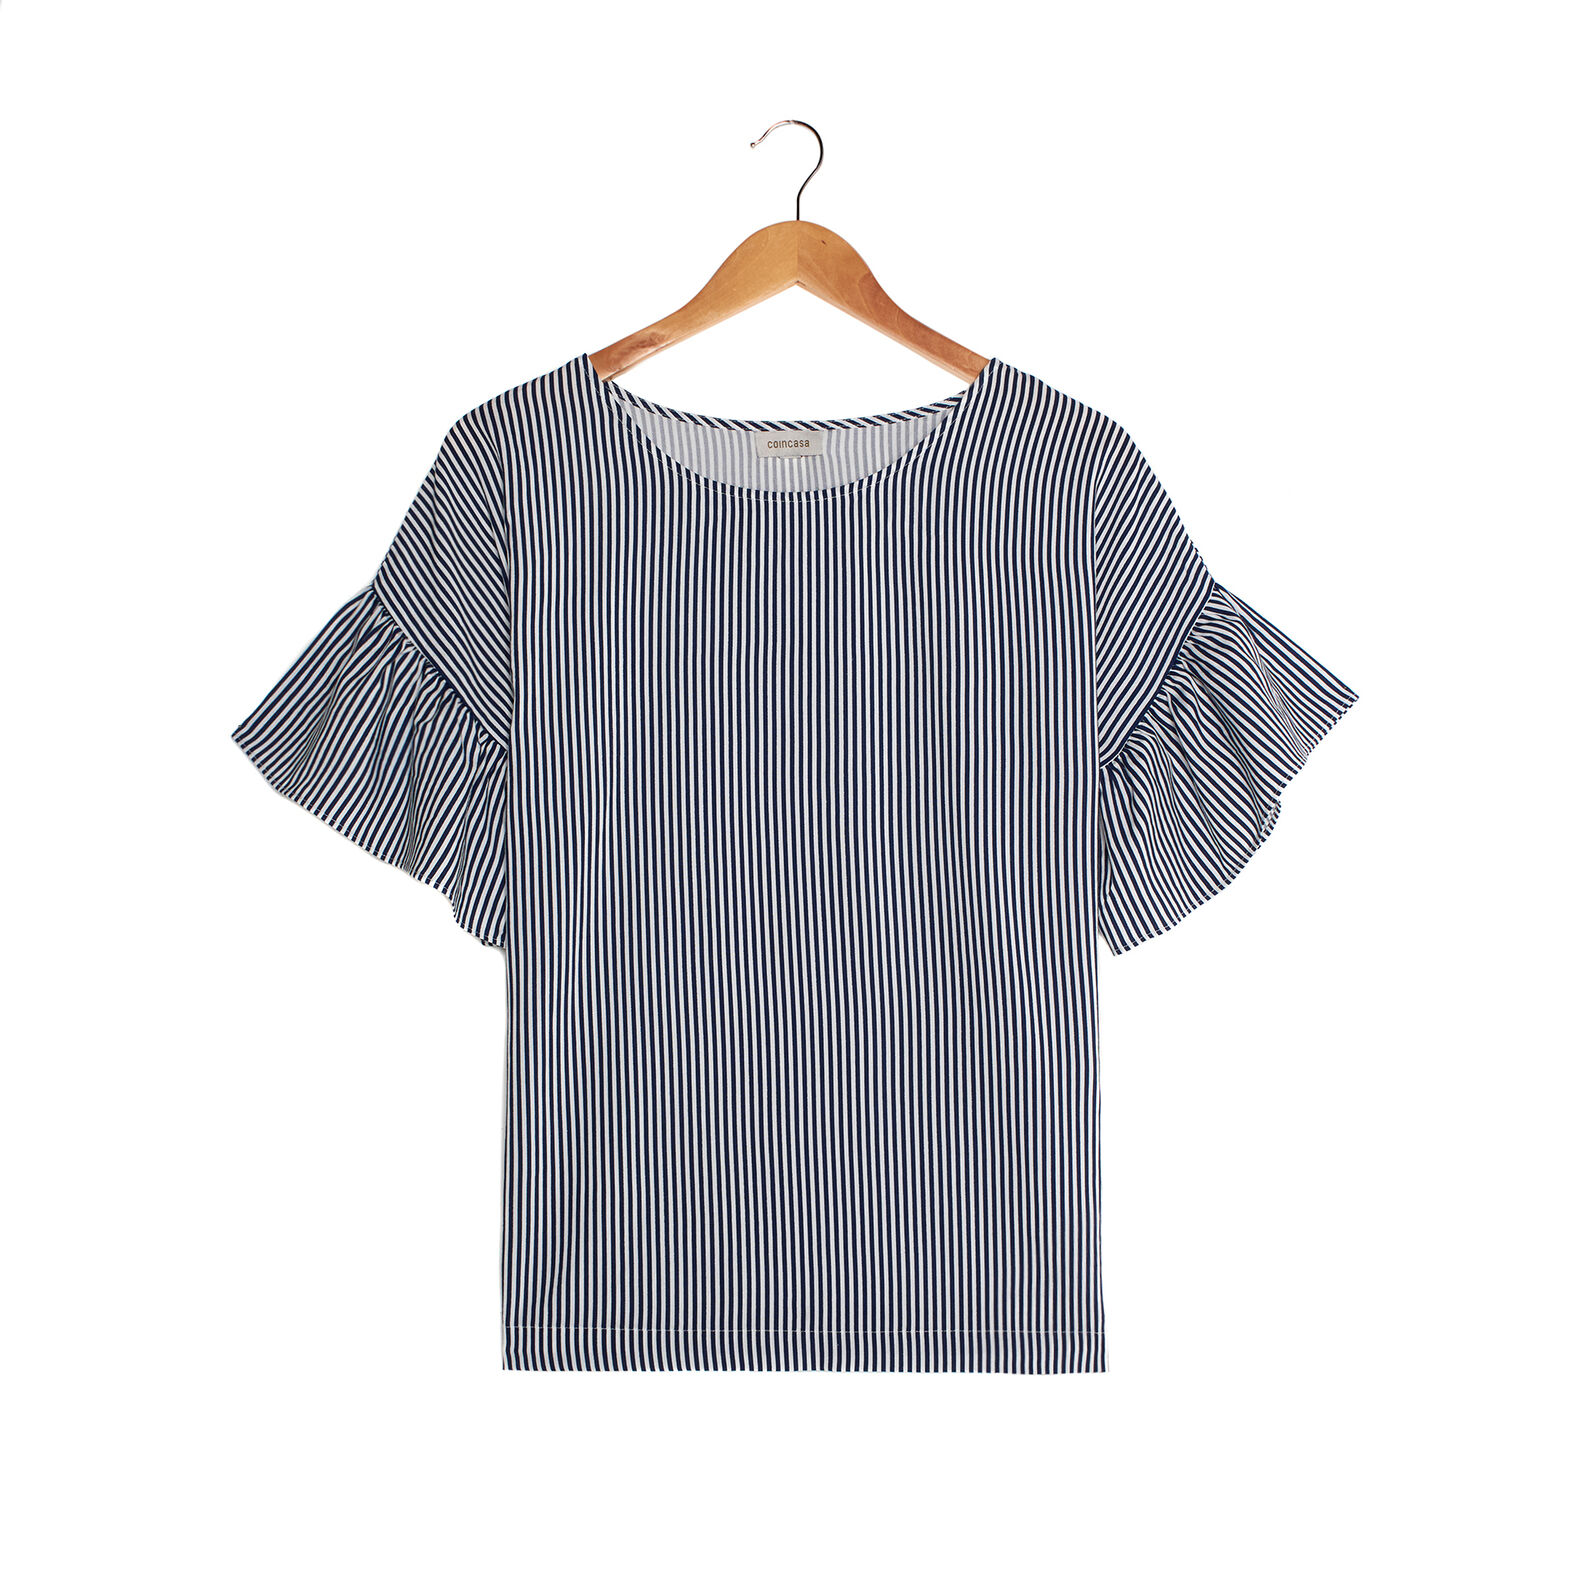 Viscose top with flounce sleeves.